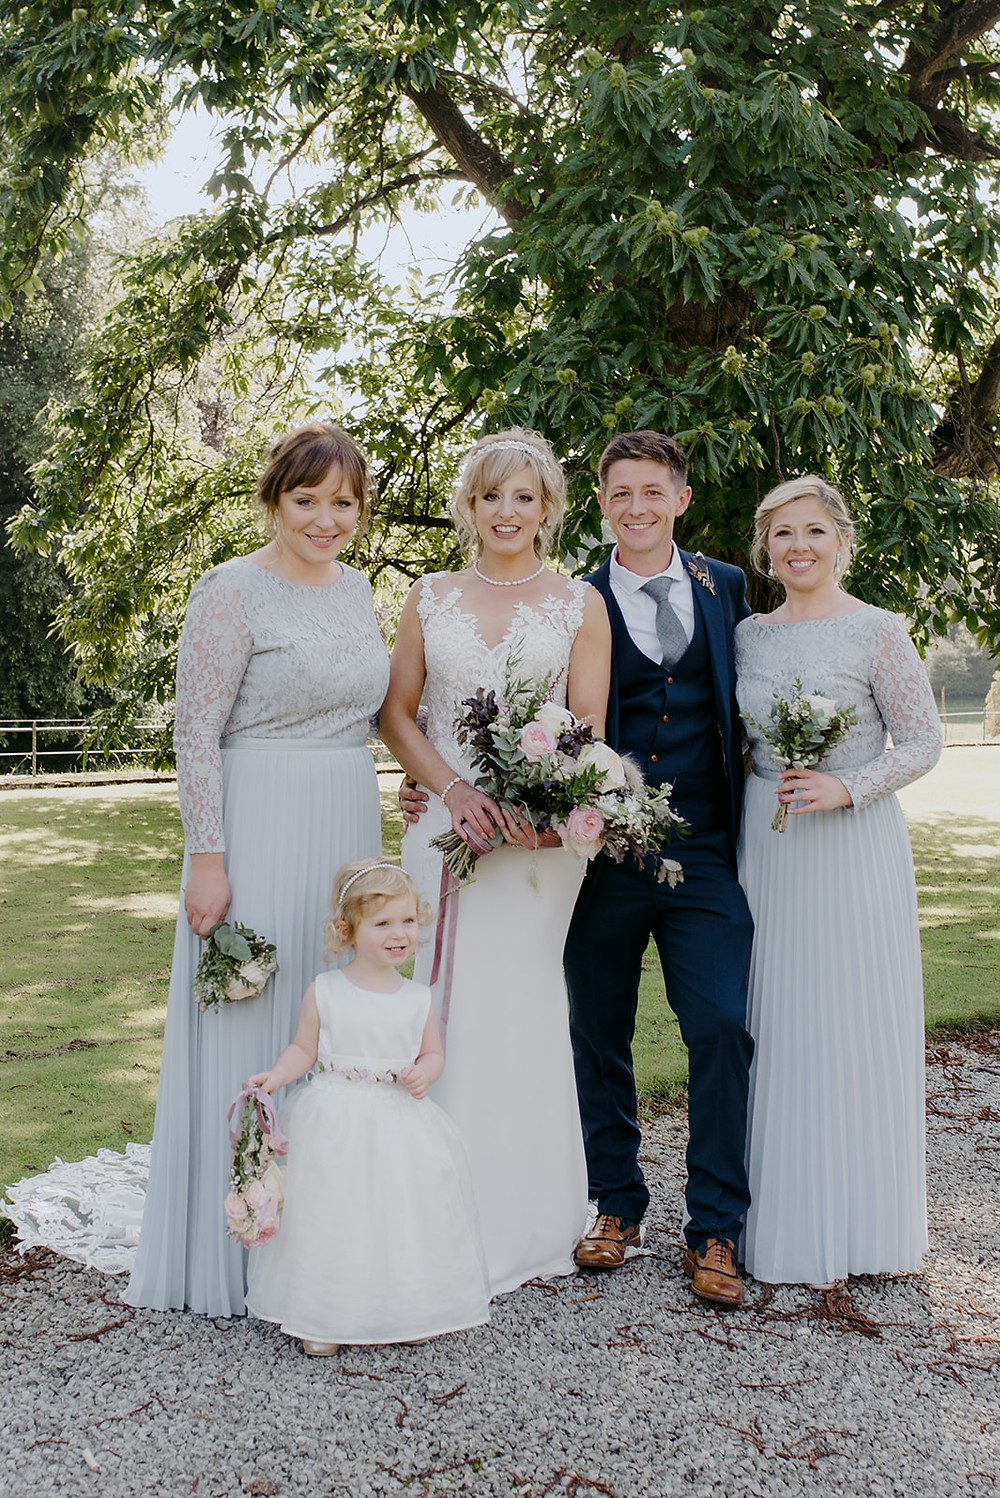 wedding group shot outdoor by tree sunny